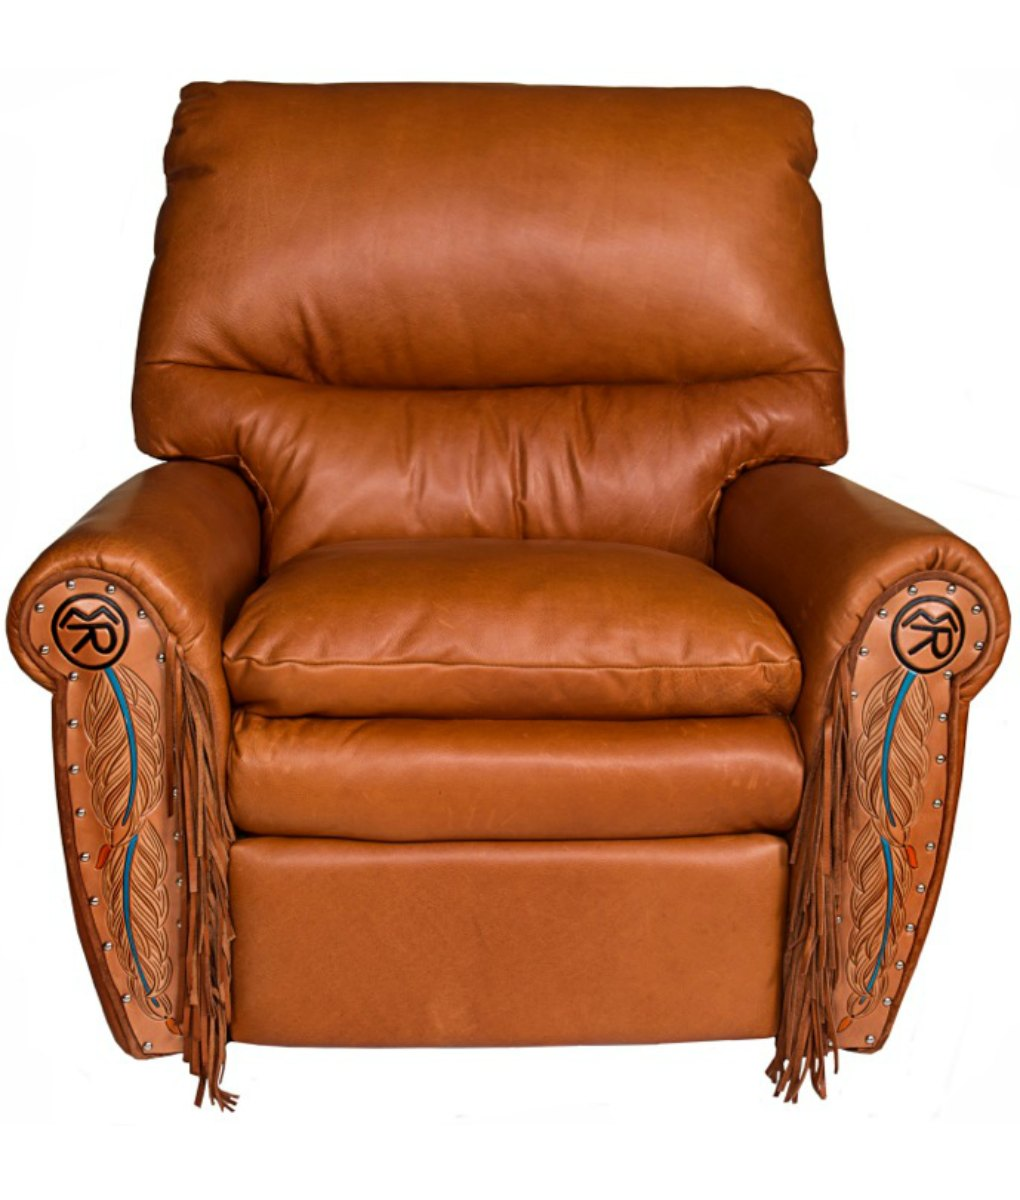 Western Recliner The Ultimate Recliner: down filled seat and back, lumbar support, leather soft as butter, and can be made in any color leather with your choice of cowhide, tooling, fringe, conchos, brand and more! Truly the most comfortable recliner I've ever sat in. | Western and Rustic Furniture and Decor from RusticArtistry.com